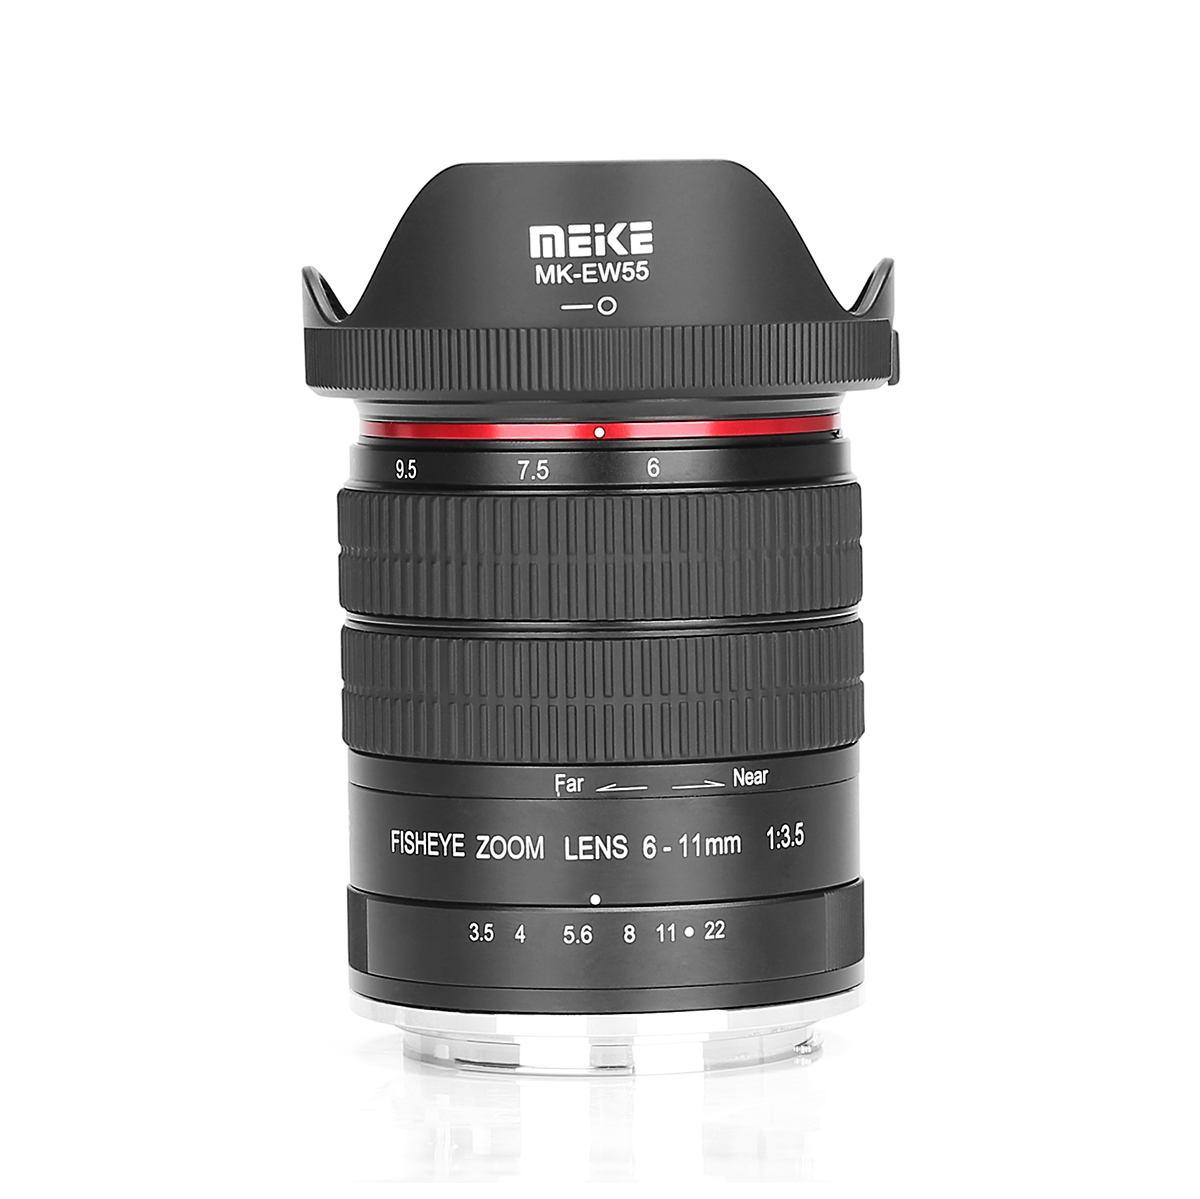 MK-6-11mm F3.5 Fish eye Lens from Meike